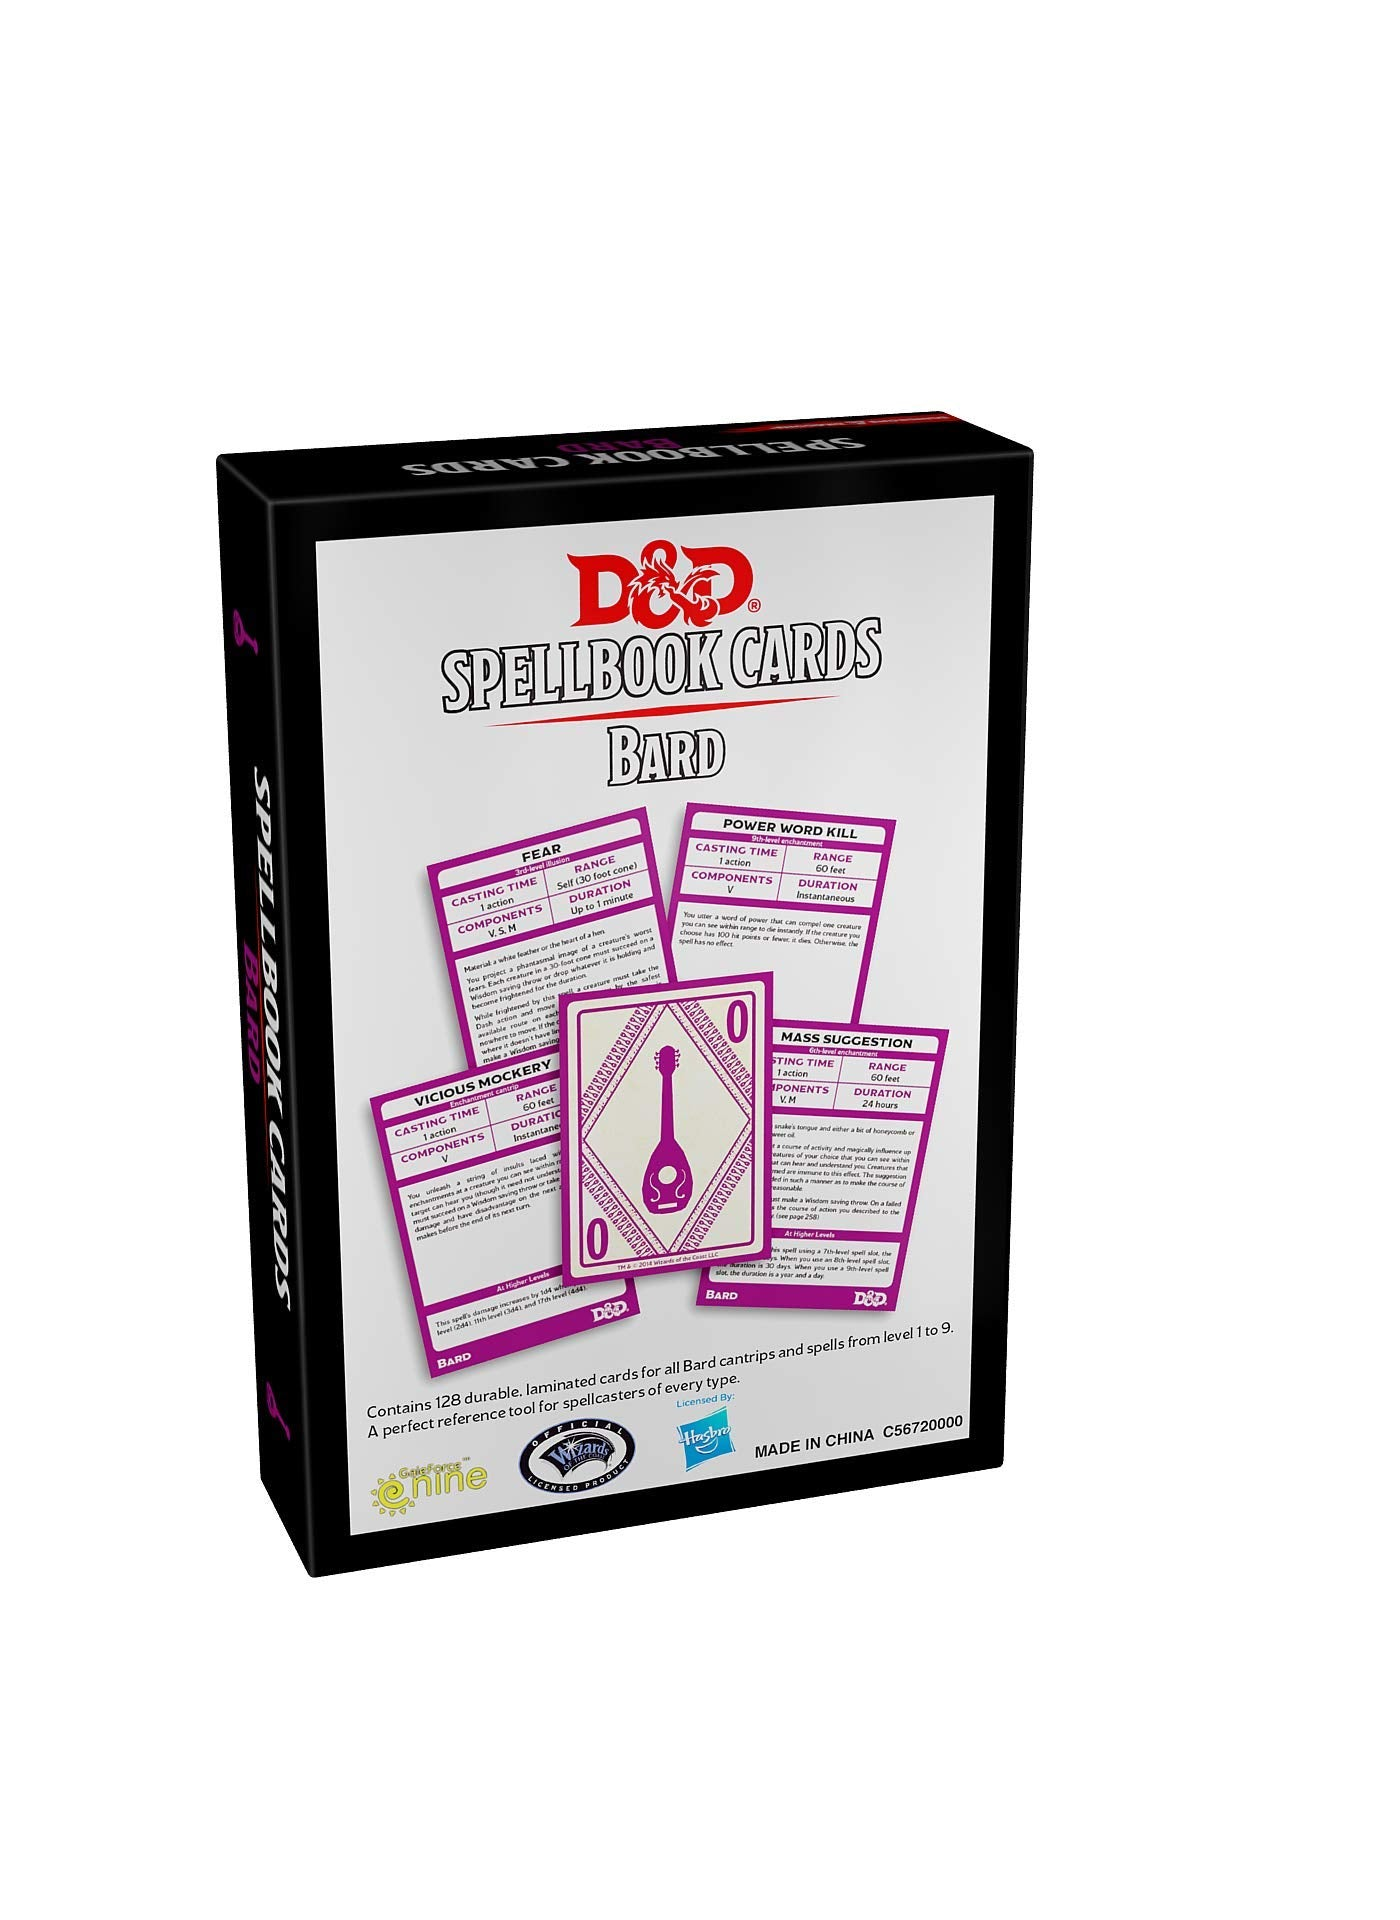 Dungeons & Dragons Spellbook Cards: Bard | Waypoint Games CA